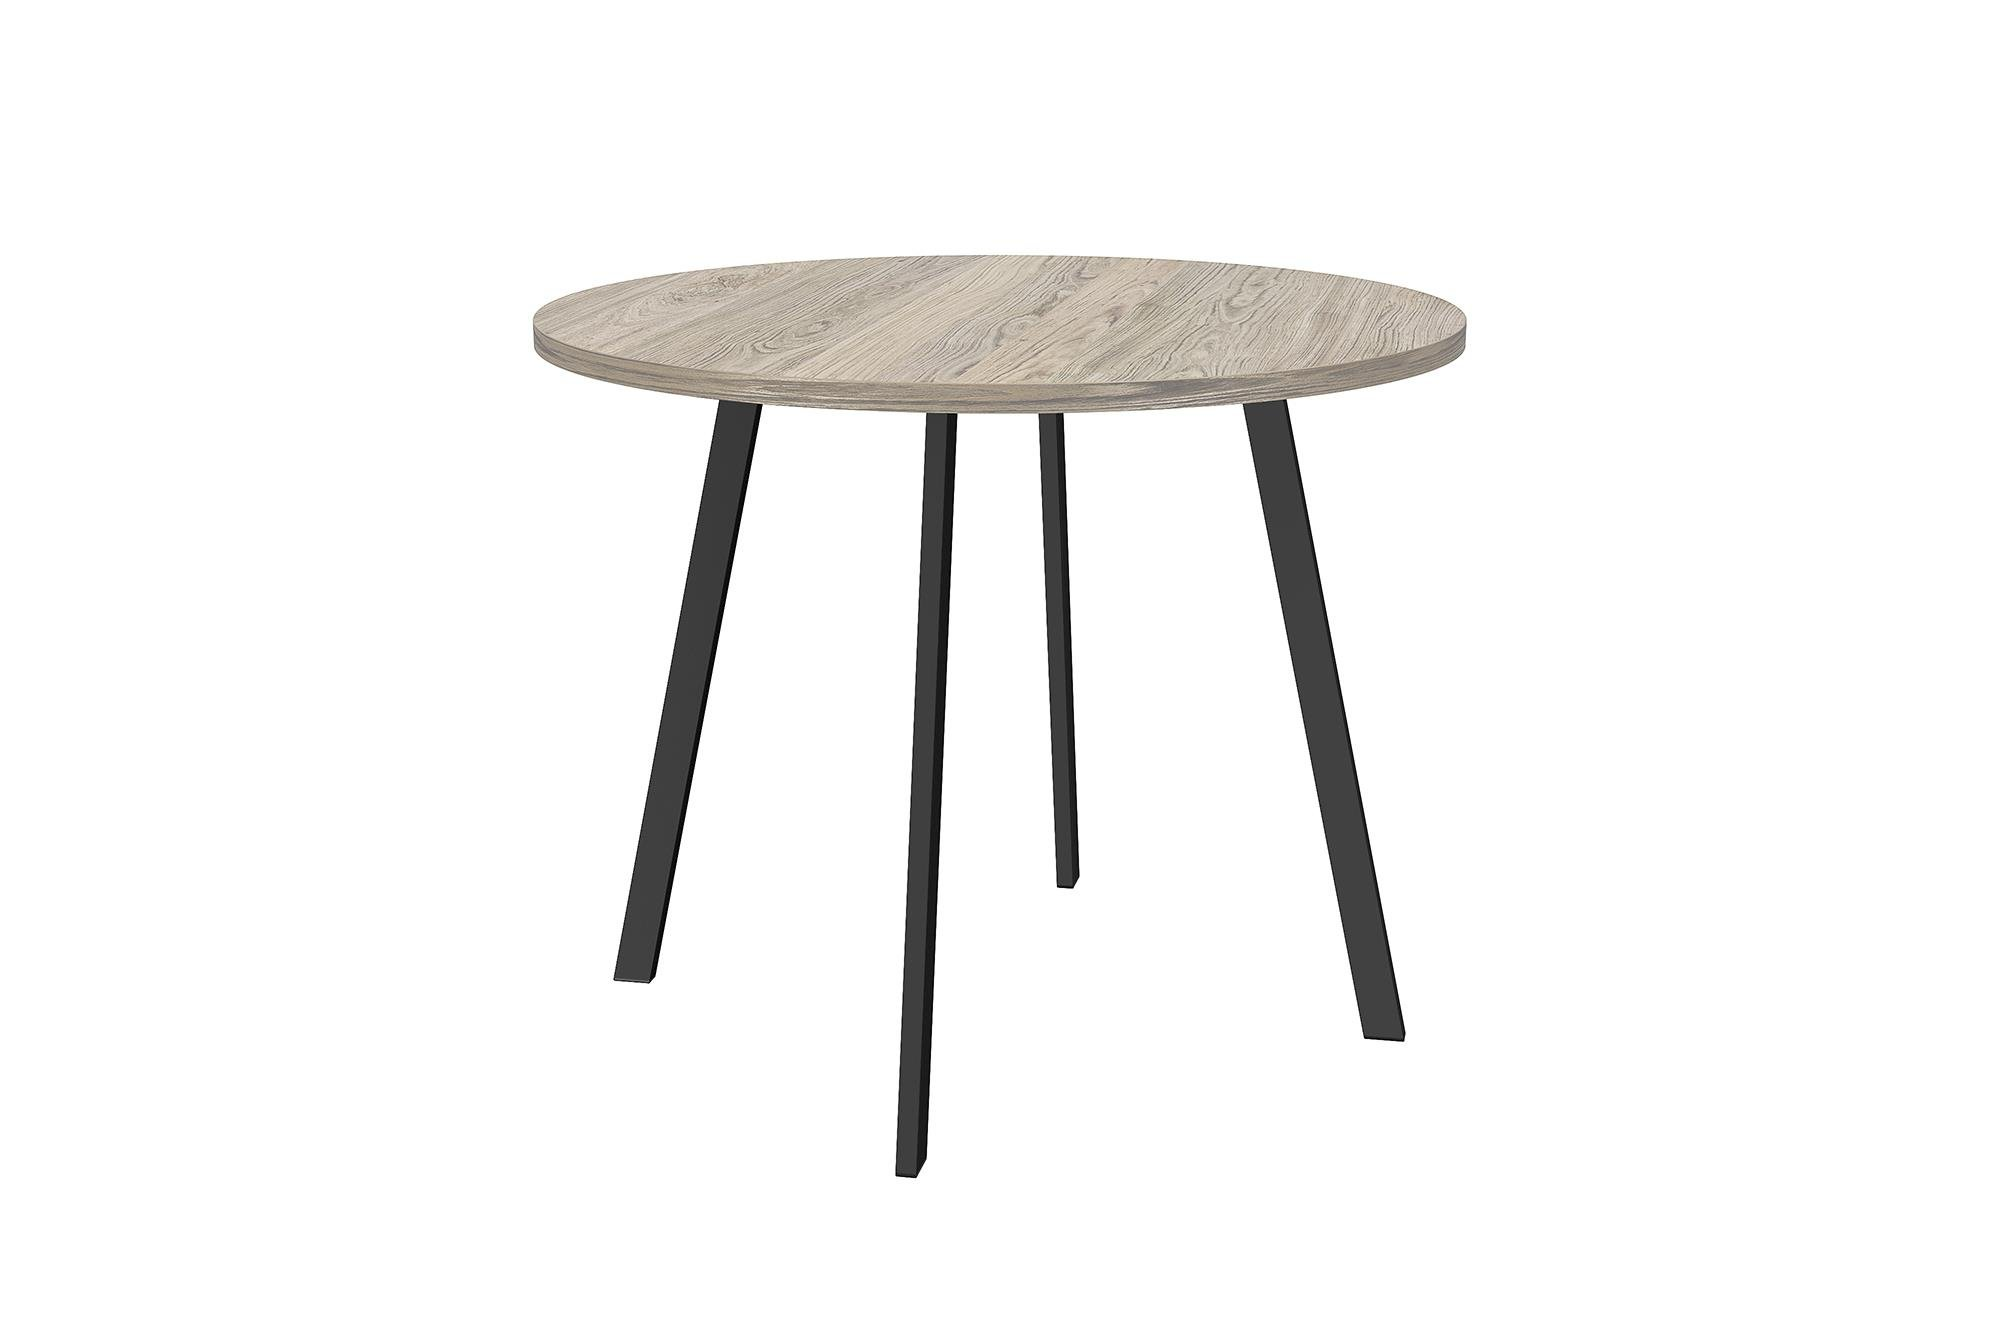 Novogratz Leo Farmhouse Round Dining Table with Sleek Slanted Metal Legs and Grey Wood Veneer Table Top - Rustic, yet contemporary style that is perfect for small spaces as it's compact Mix and match with the Novogratz Leo Farmhouse Bar Stool, Counter Stool and Dining Chair Made of a Sturdy Black metal frame and grey wood veneer table Top - kitchen-dining-room-furniture, kitchen-dining-room, kitchen-dining-room-tables - 61aA00T8LqL -